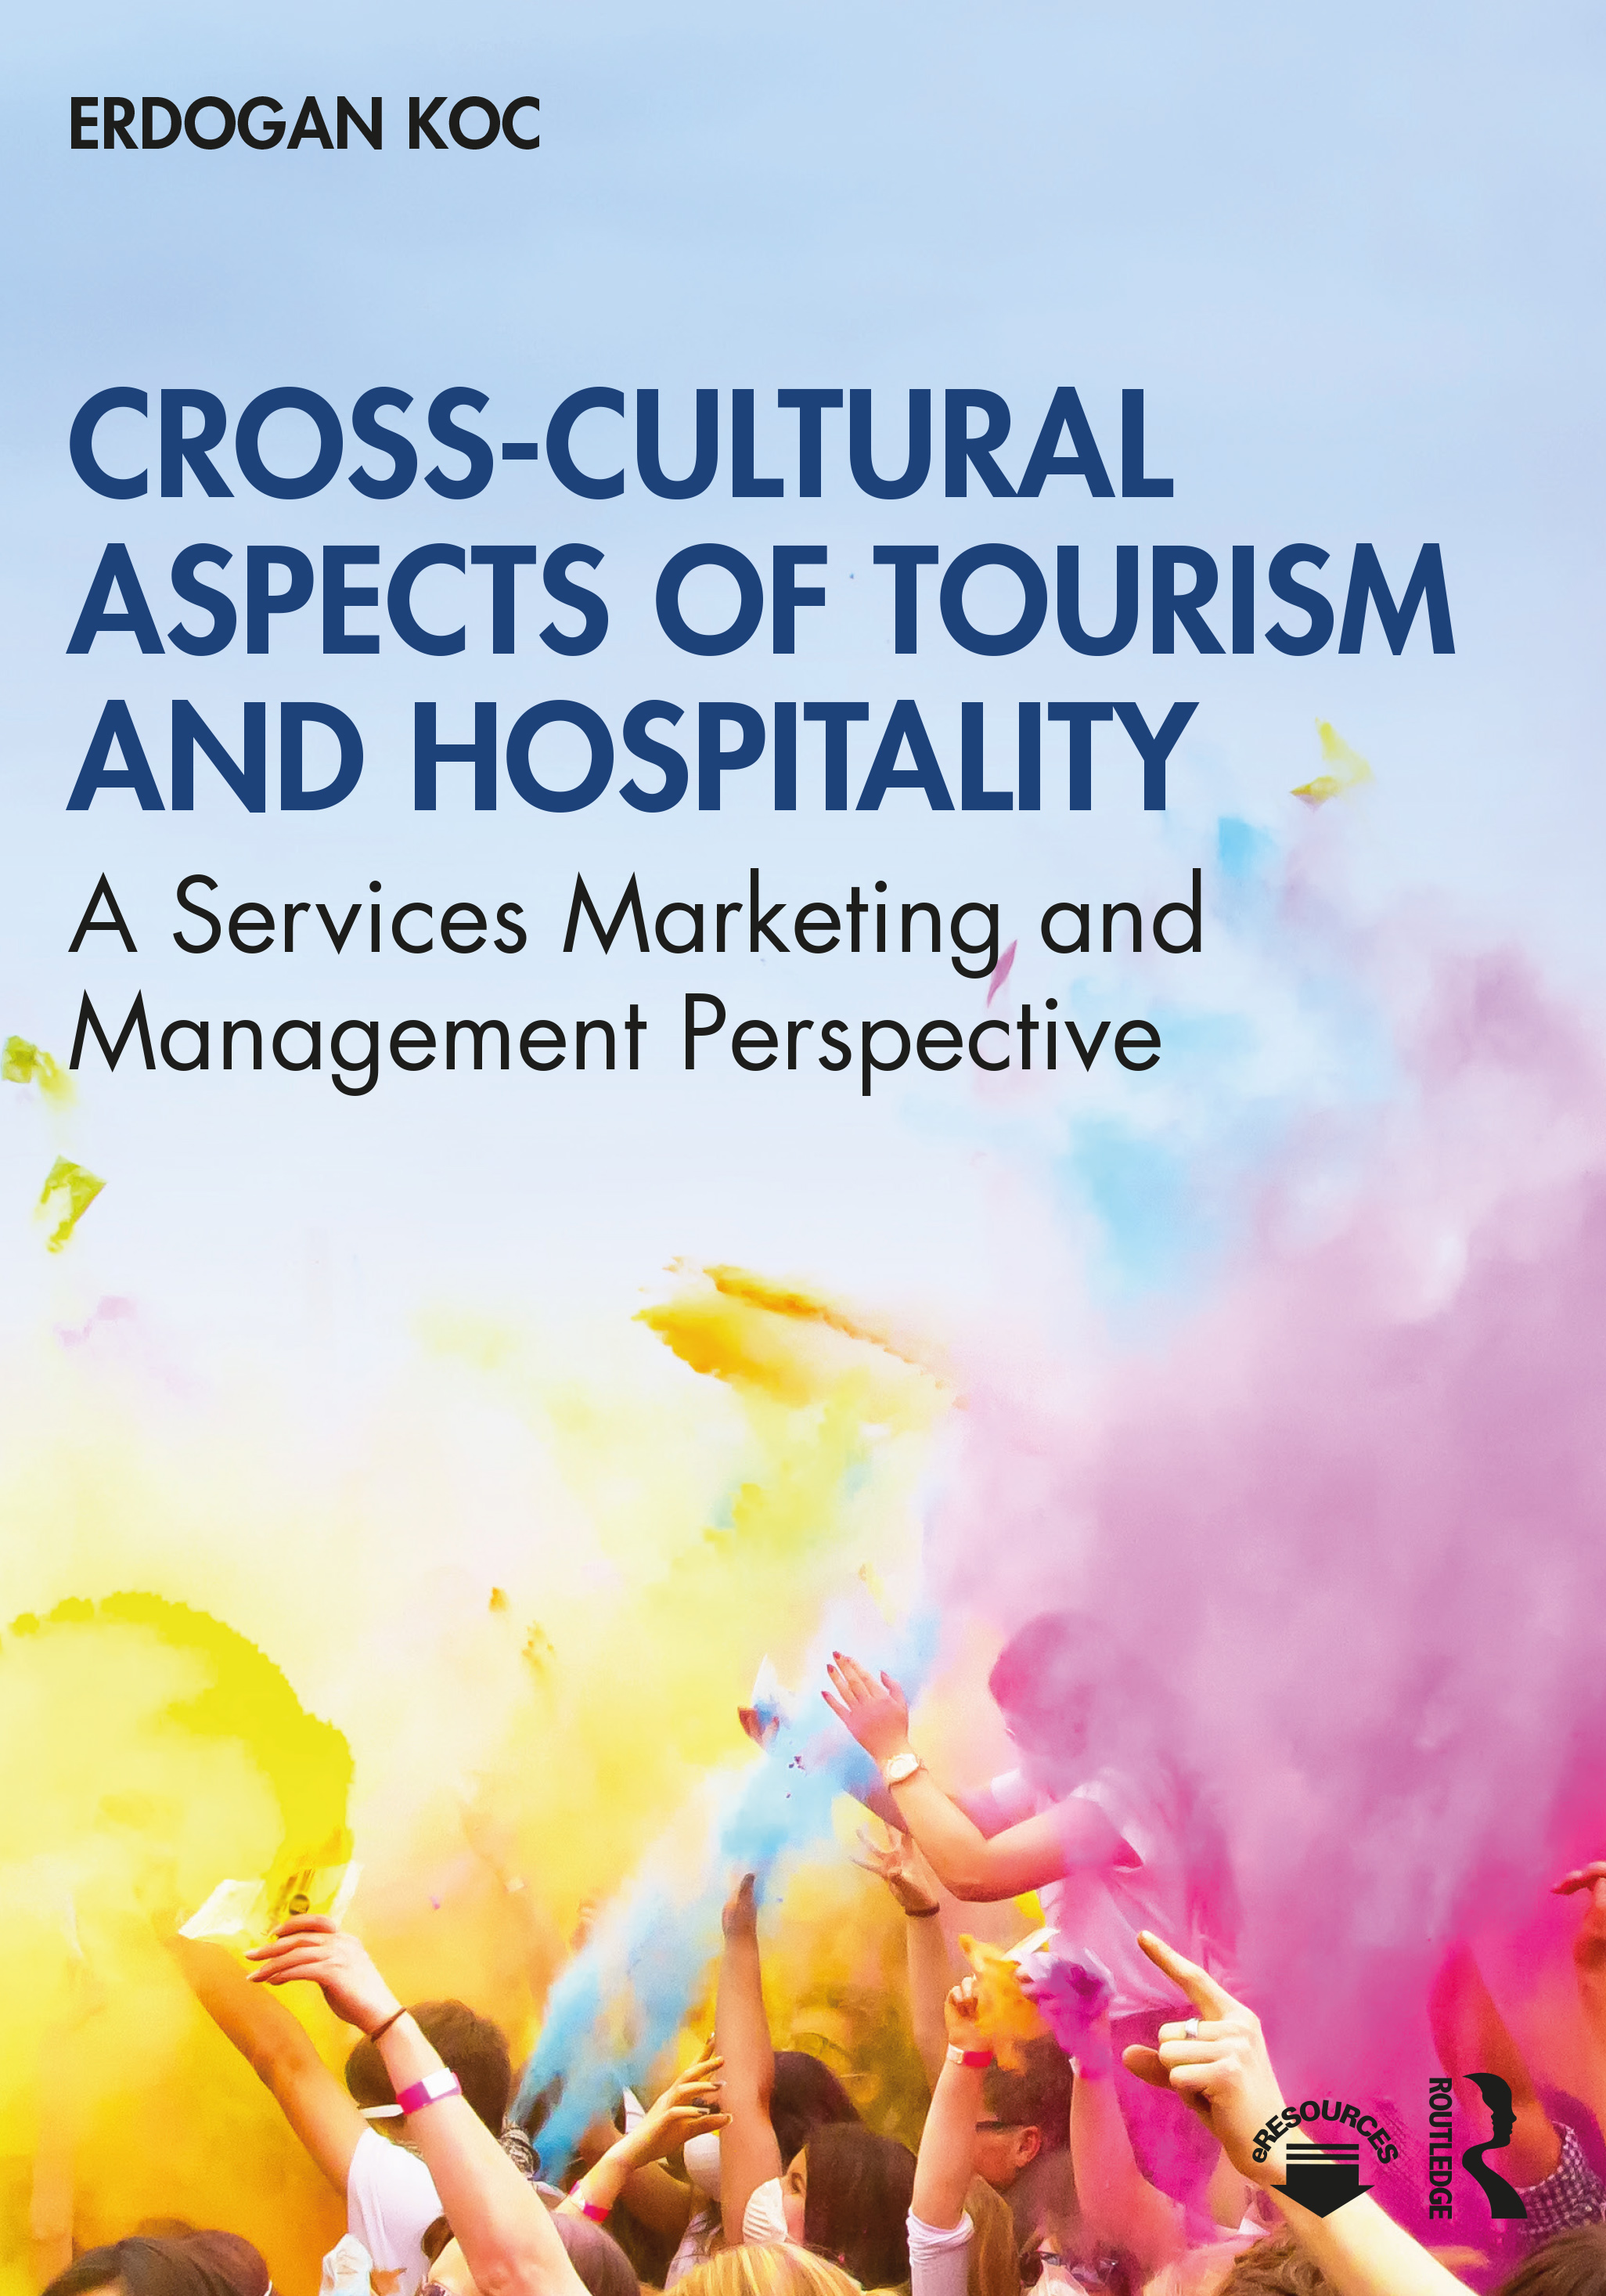 Cross-Cultural Aspects of Tourism and Hospitality